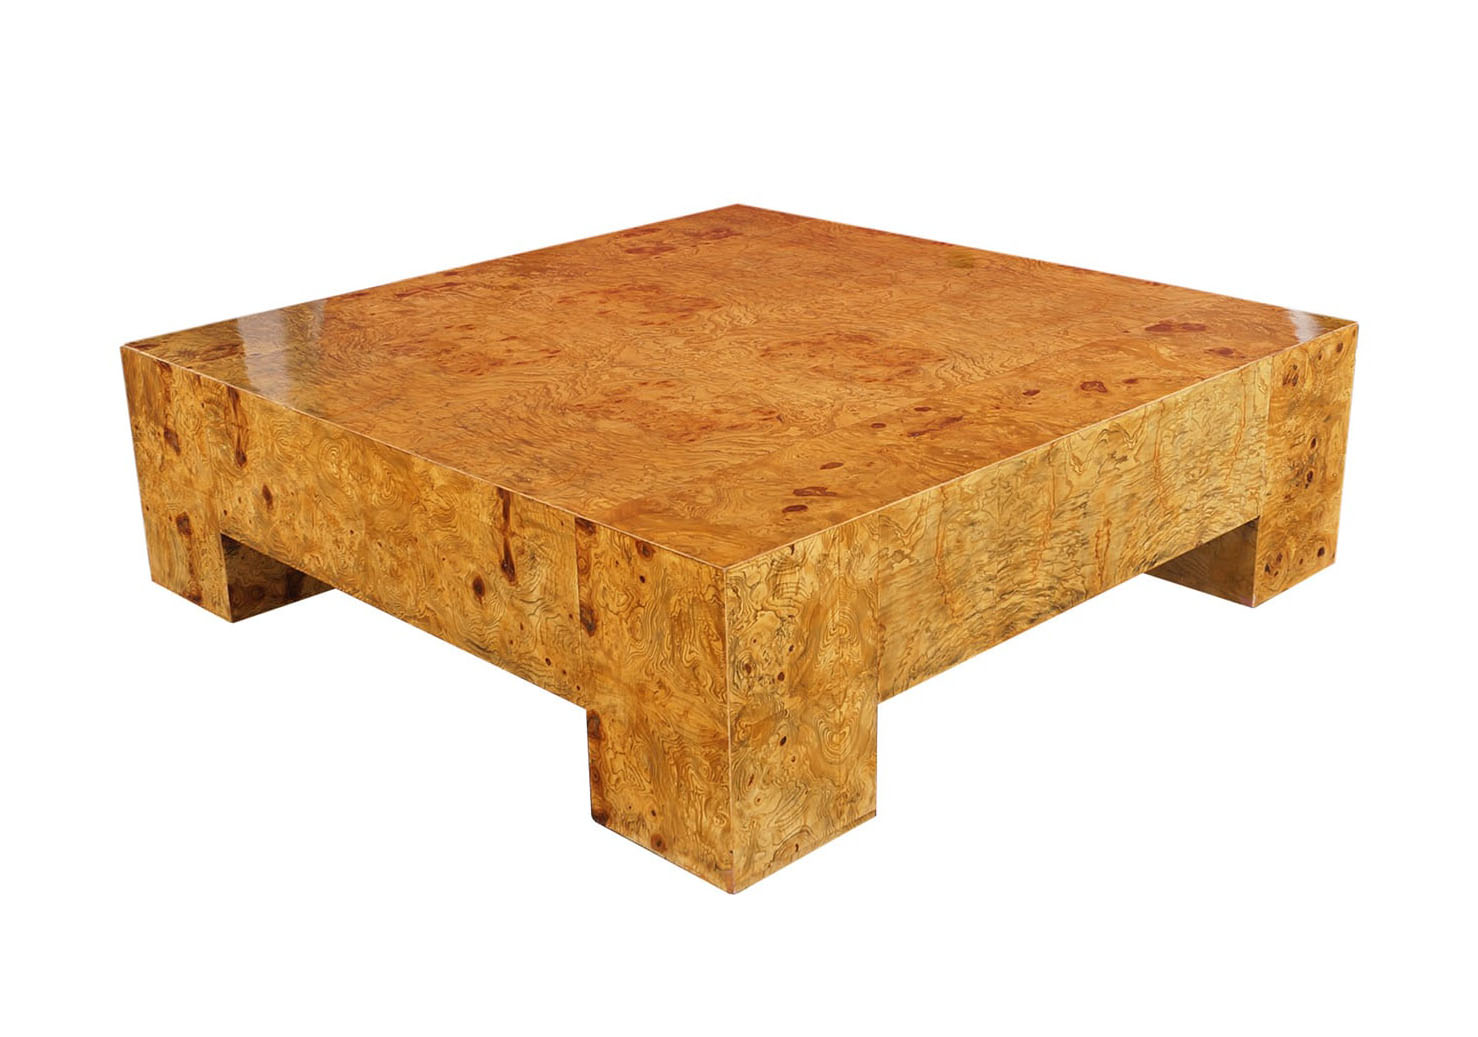 Vintage Burl Wood Coffee Table by Milo Baughman